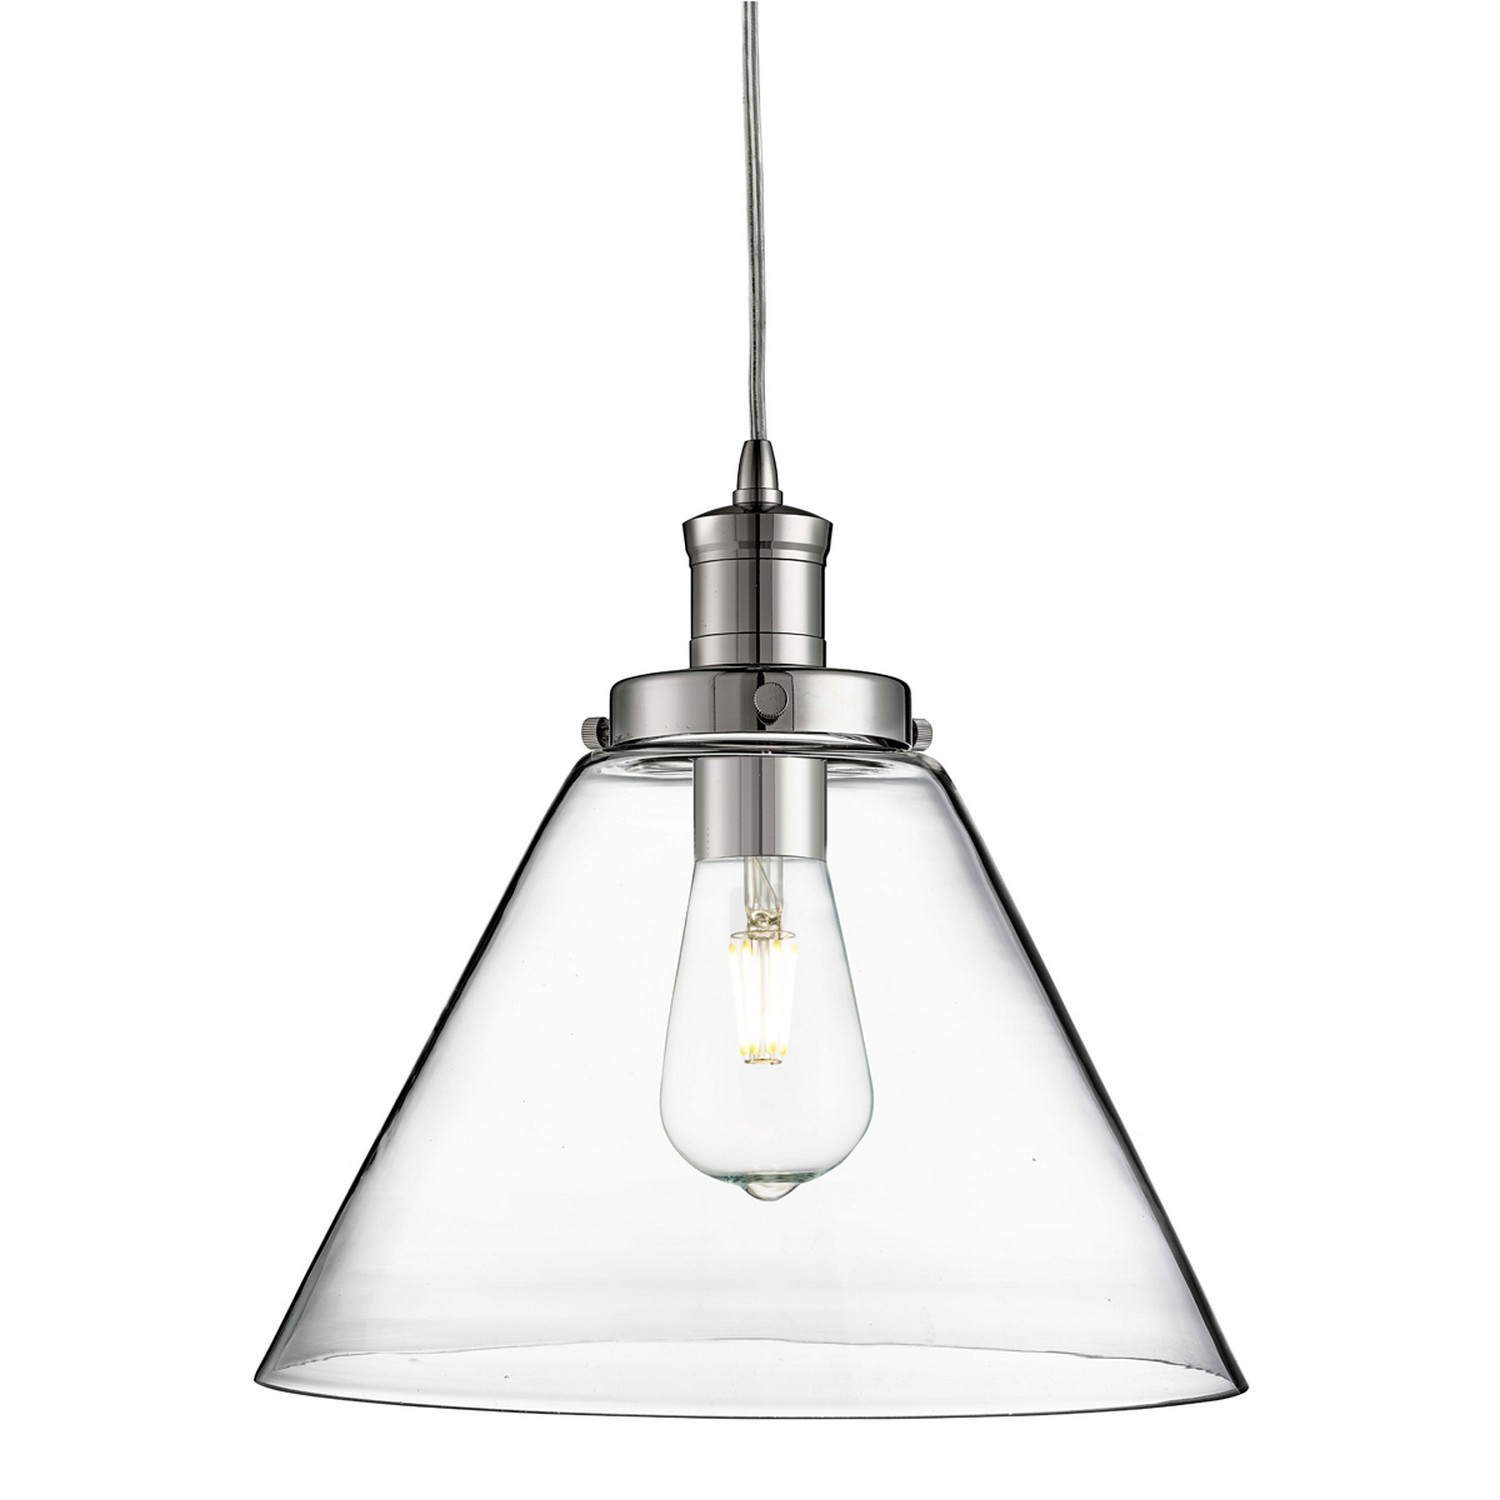 Details about pyramid chrome ceiling pendant light fitting clear glass shade home lighting new